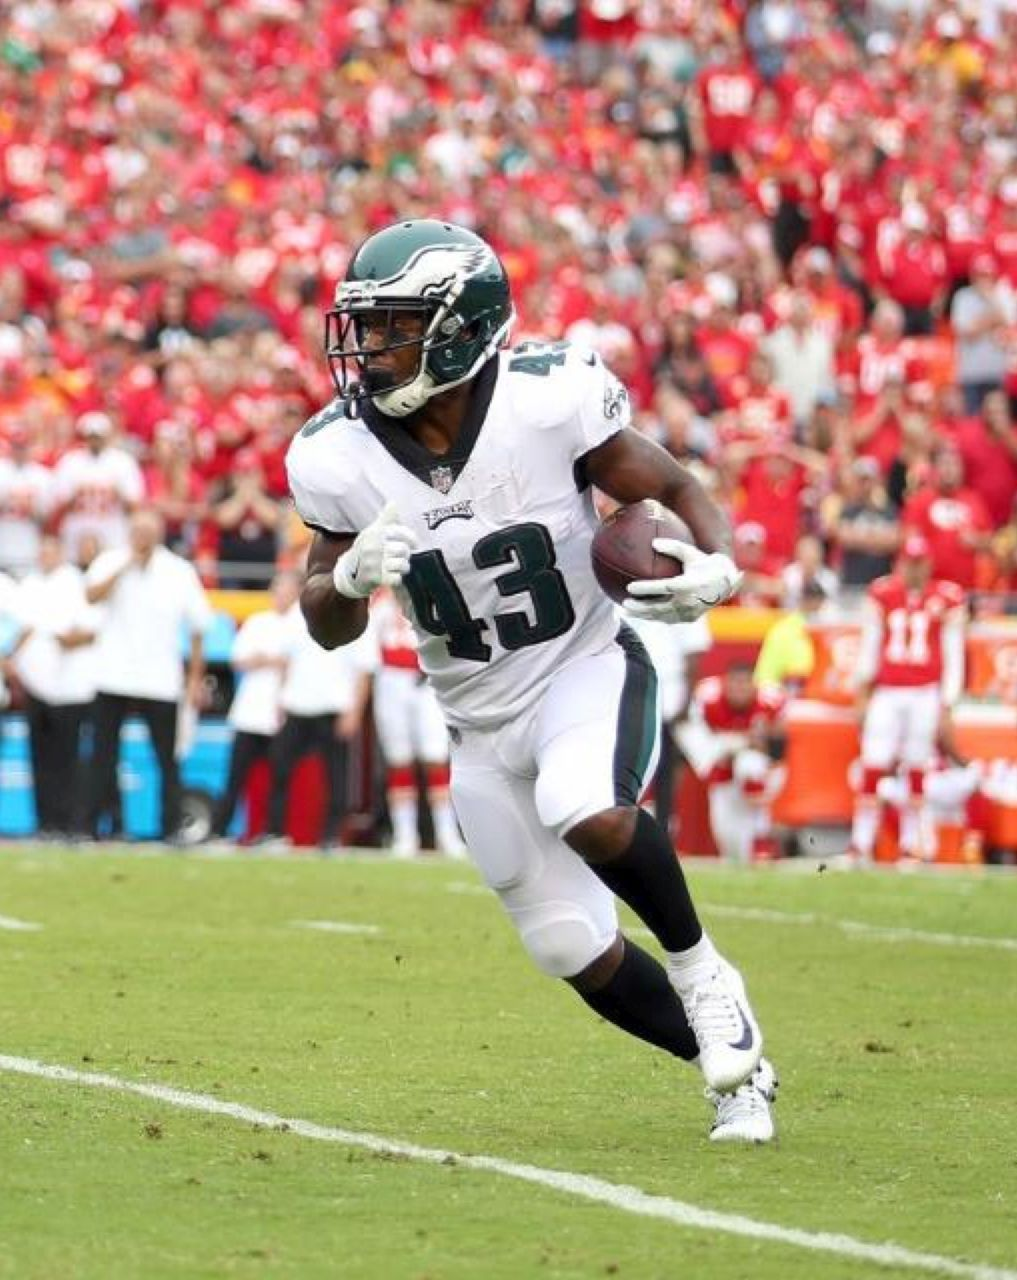 Darren Sproles With Torn ACL And Broken Arm